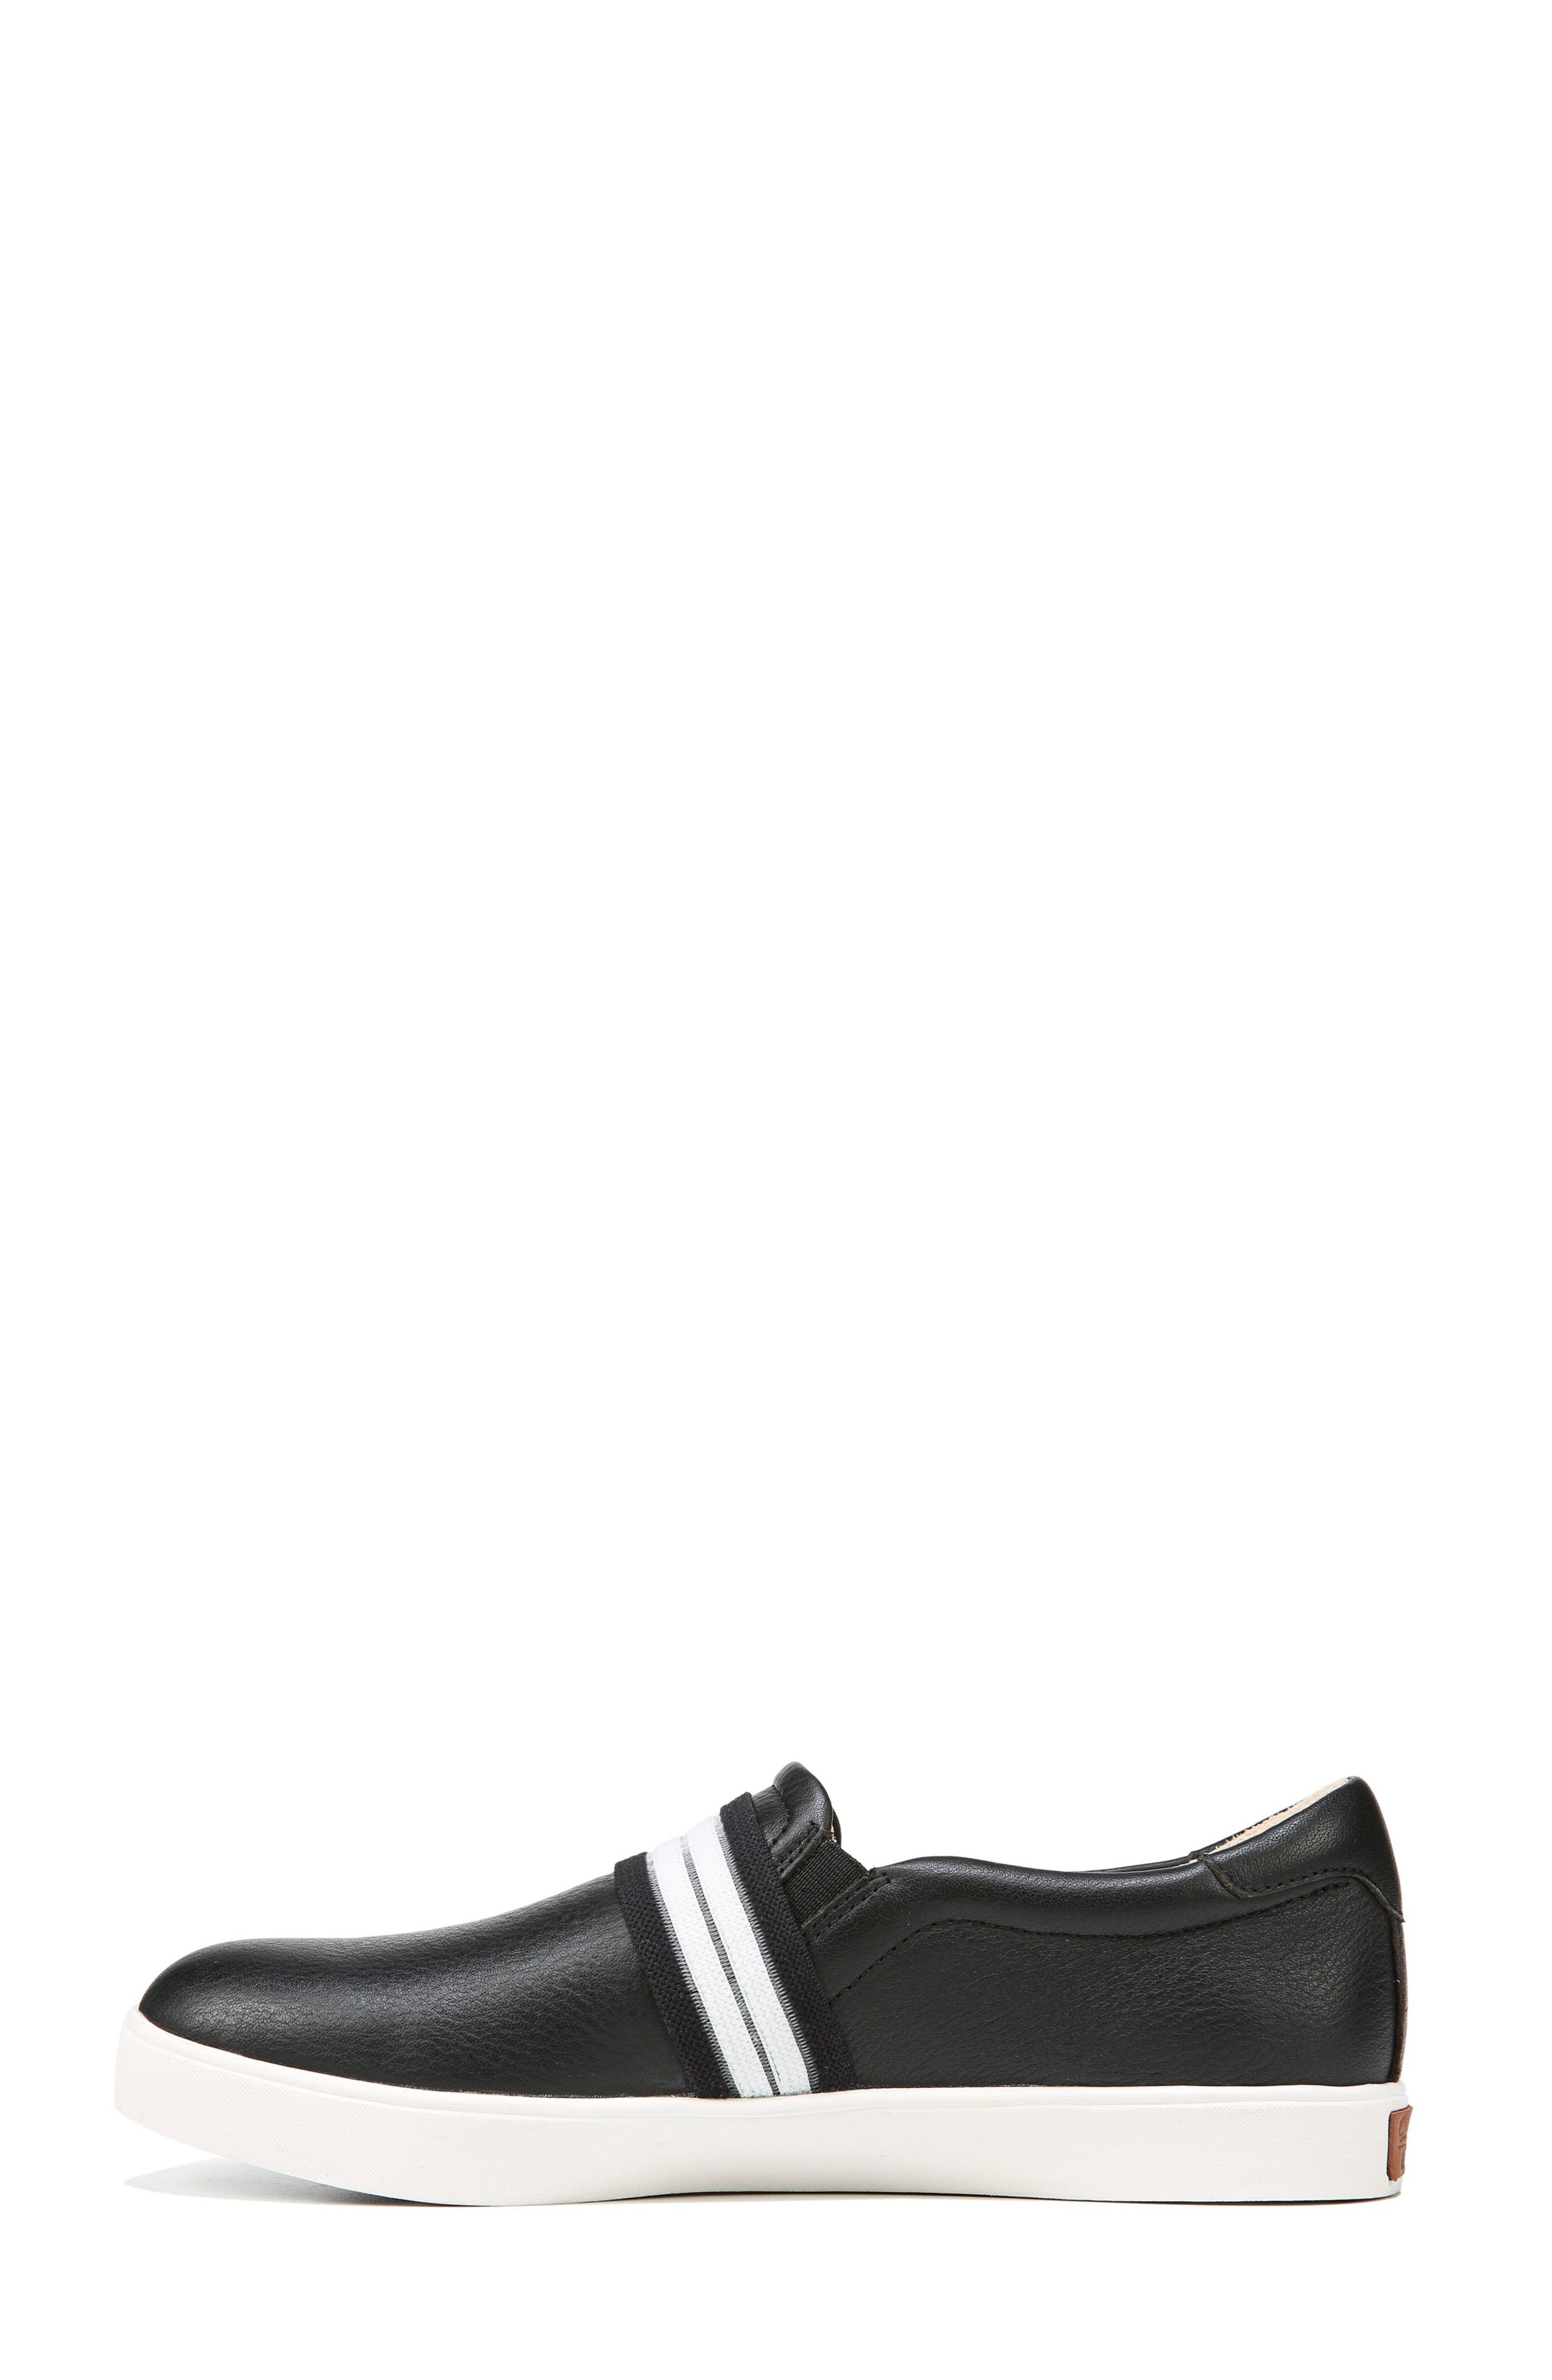 Scout Slip-On Sneaker,                             Alternate thumbnail 3, color,                             BLACK LEATHER 2